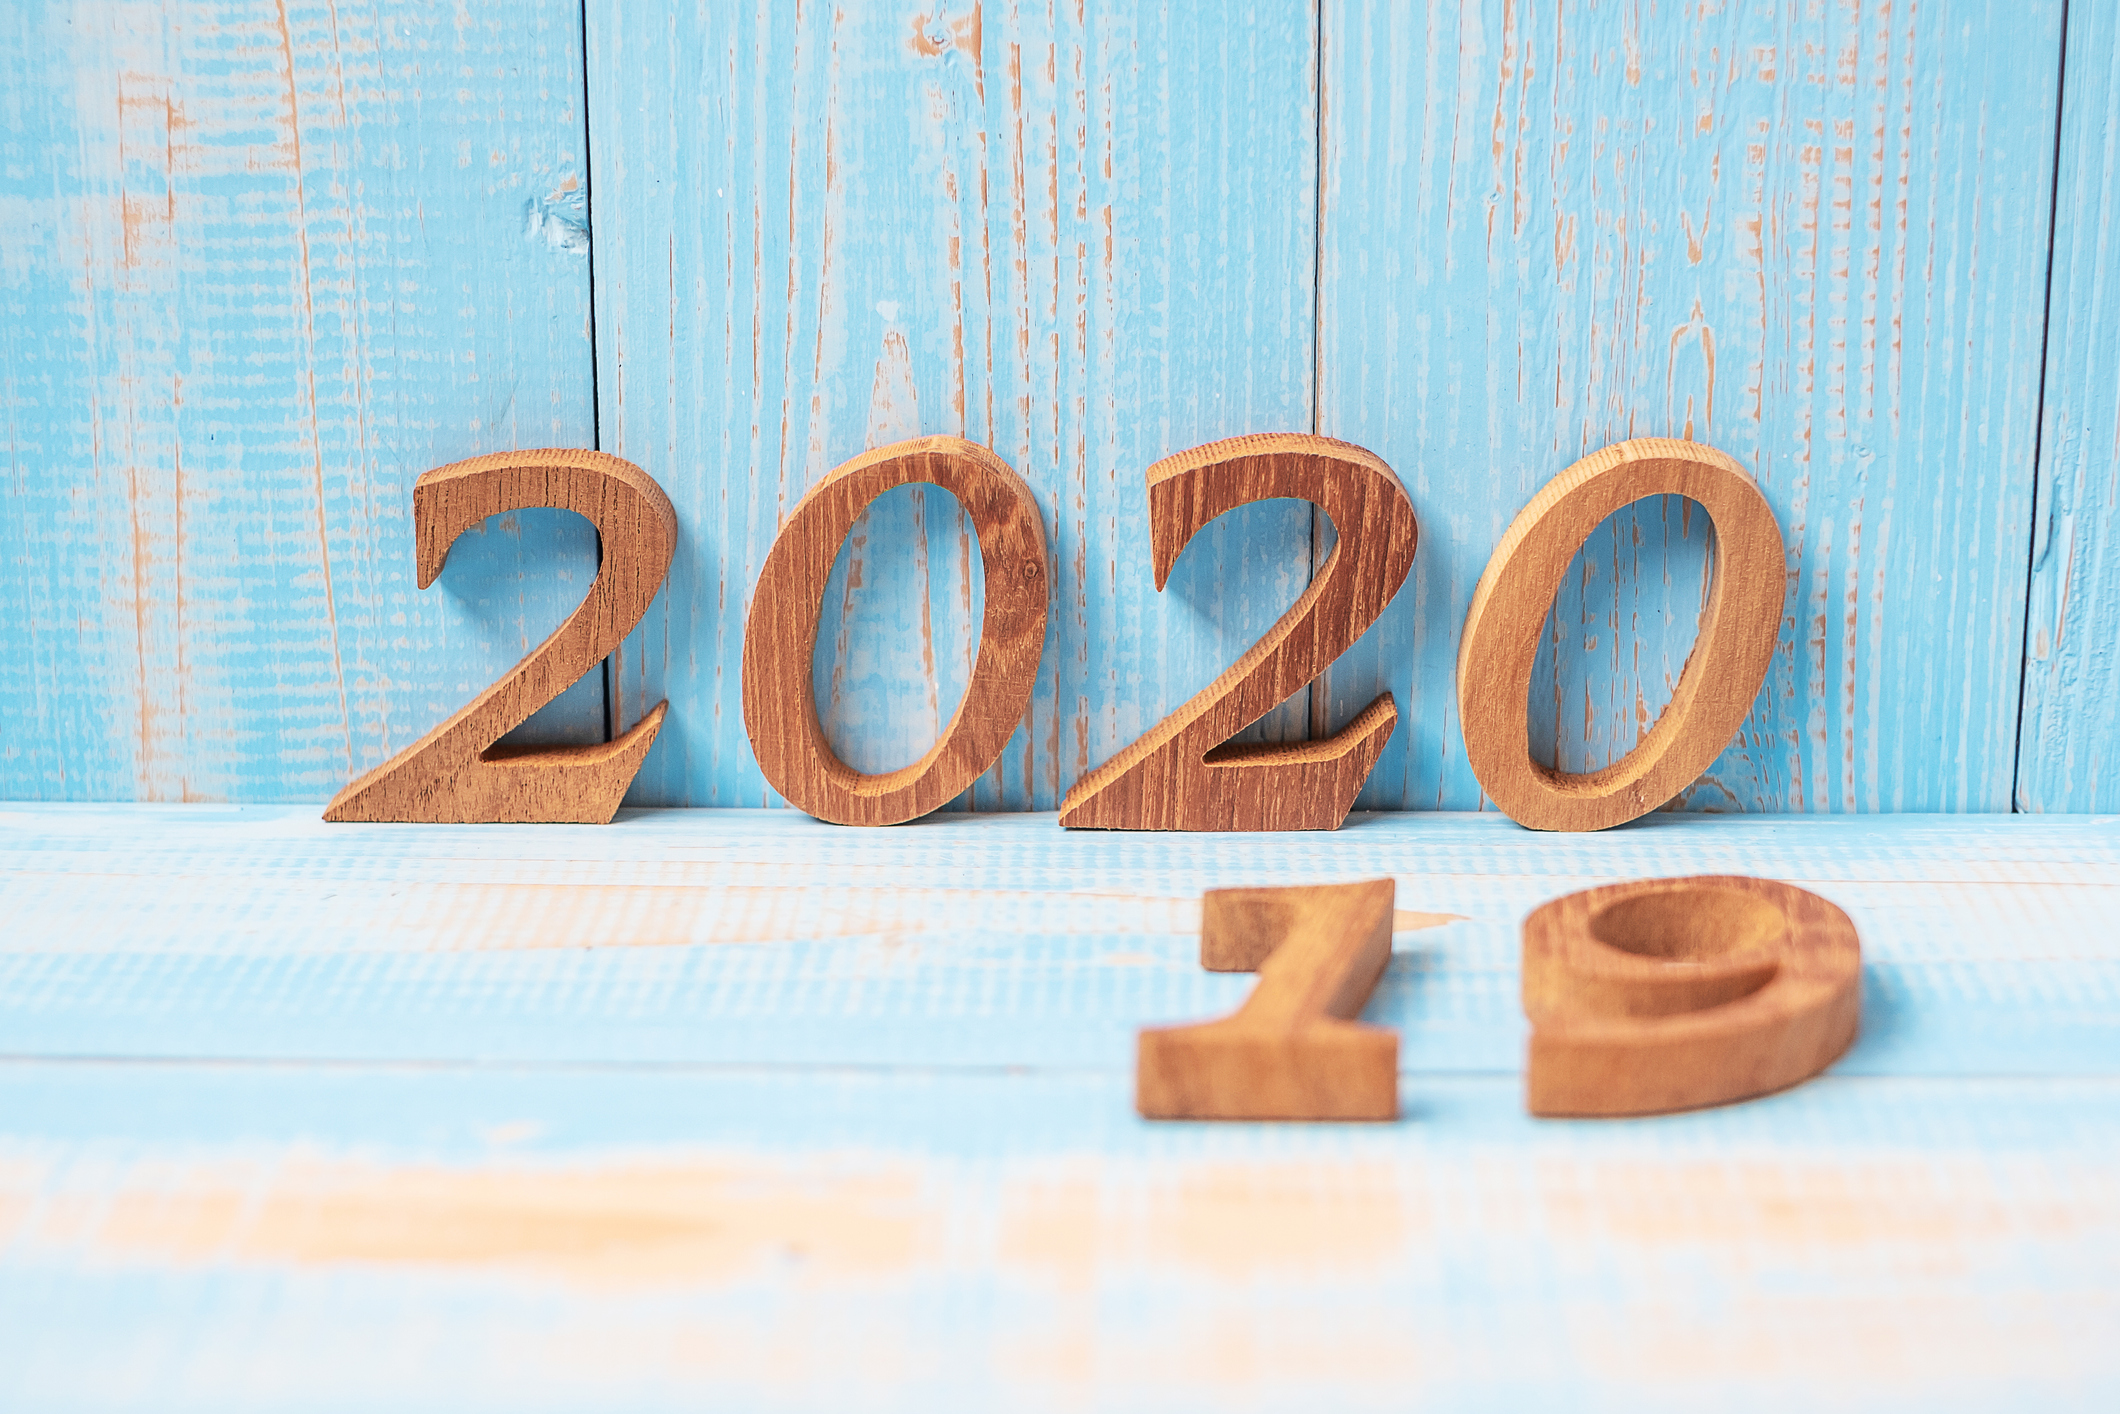 2020 A New Year's Resolution-Collaboration is a Beautiful Thing